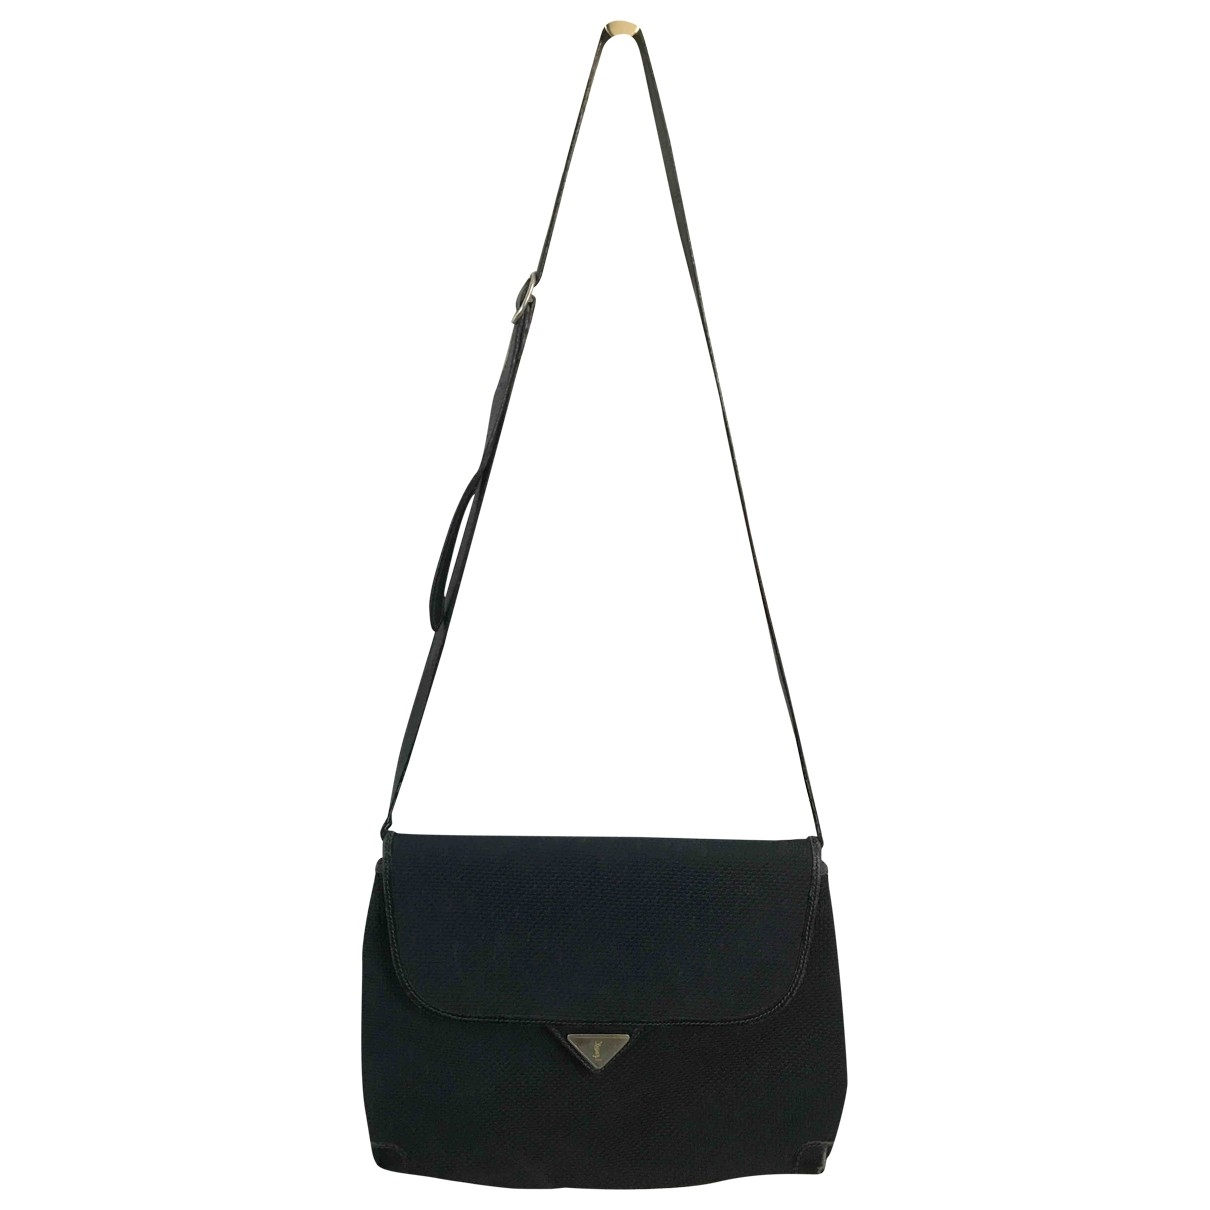 Yves Saint Laurent \N Black Cloth handbag for Women \N